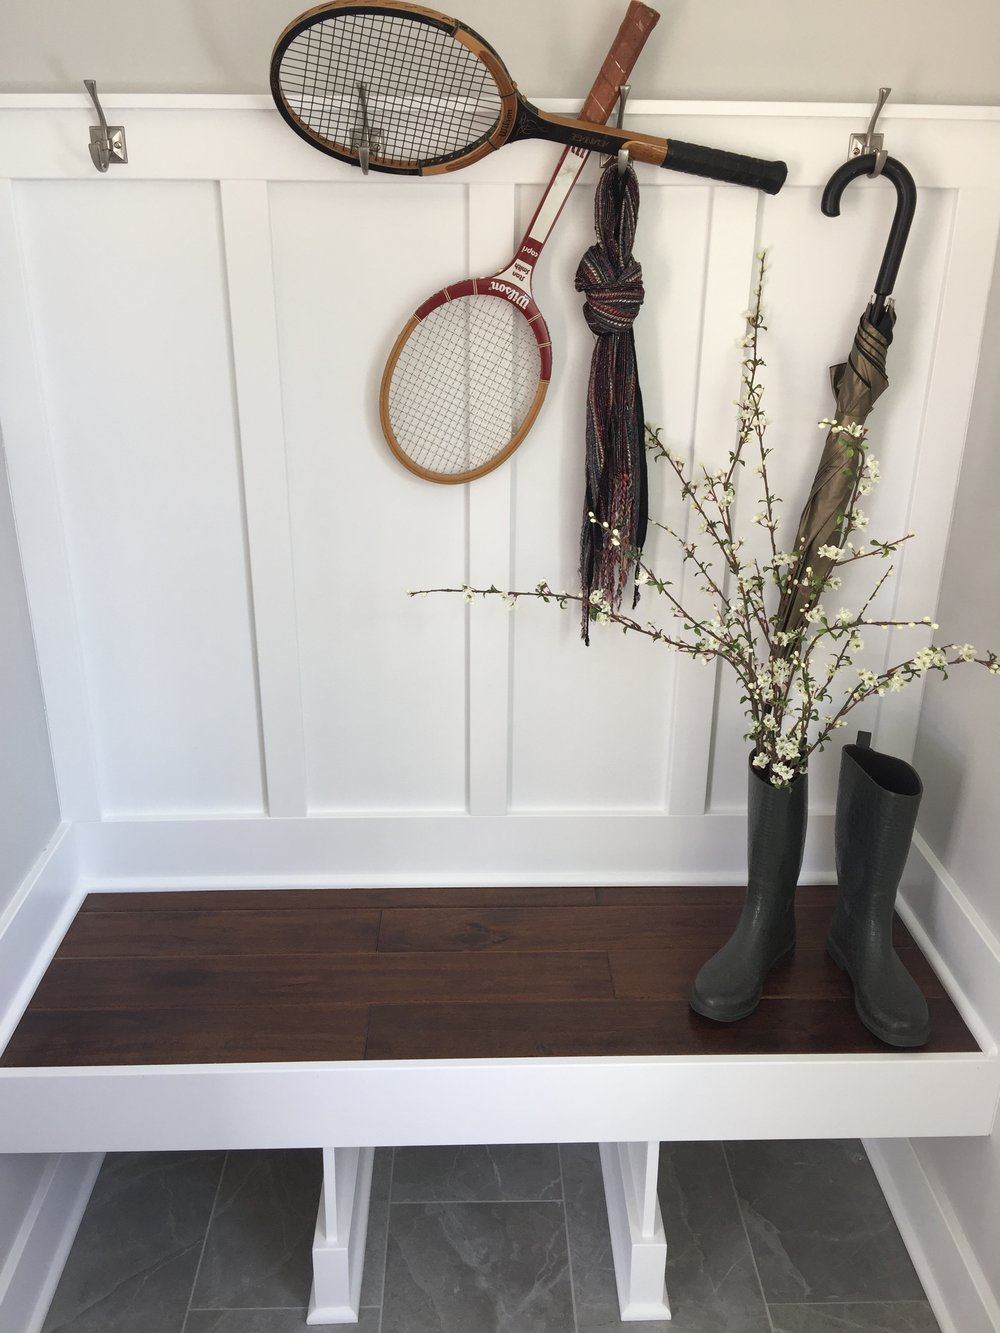 Learn how to build a mudroom bench!